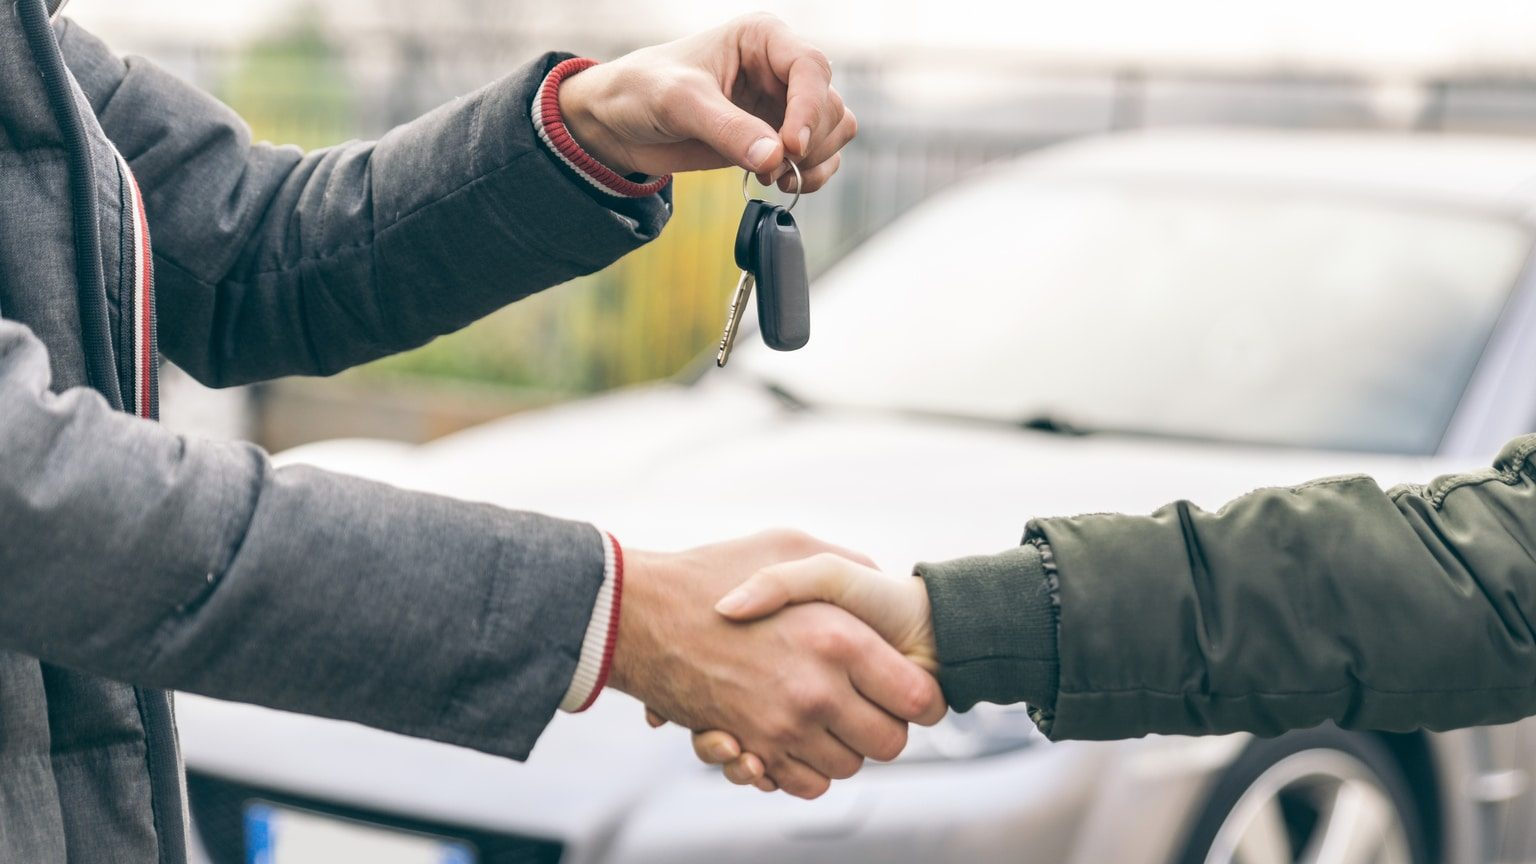 Car salesman handing new vehicle owner keys to a car